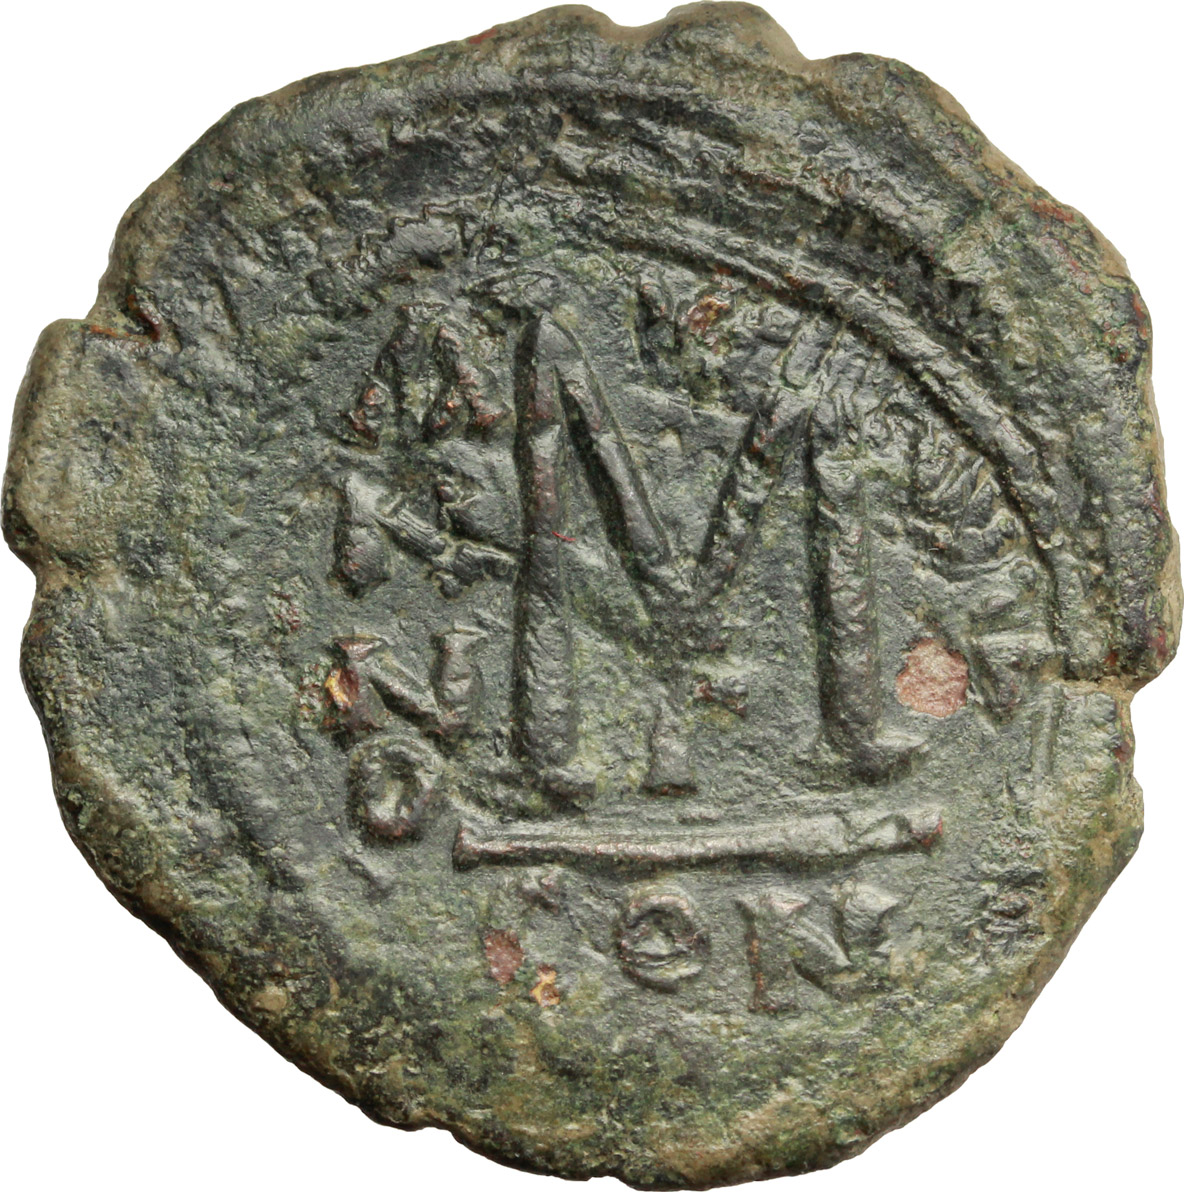 R/ Heraclius, with Heraclius Constantine (610-641).  AE Follis, Constantinople mint. Countermarked. Obv. dd NN hERACLIЧS ET hERA CONST PP A. Heraclius, on left, and Heraclius Constantine, on right, standing facing, each holding long cross; cross above. Rev. Large M; Christogram above, A/N/N/O- [...] across field; below, Γ; in exergue, CON. Sear 805. AE. g. 11.85  mm. 33.50   A nice example. Earthy green patina. Good VF.